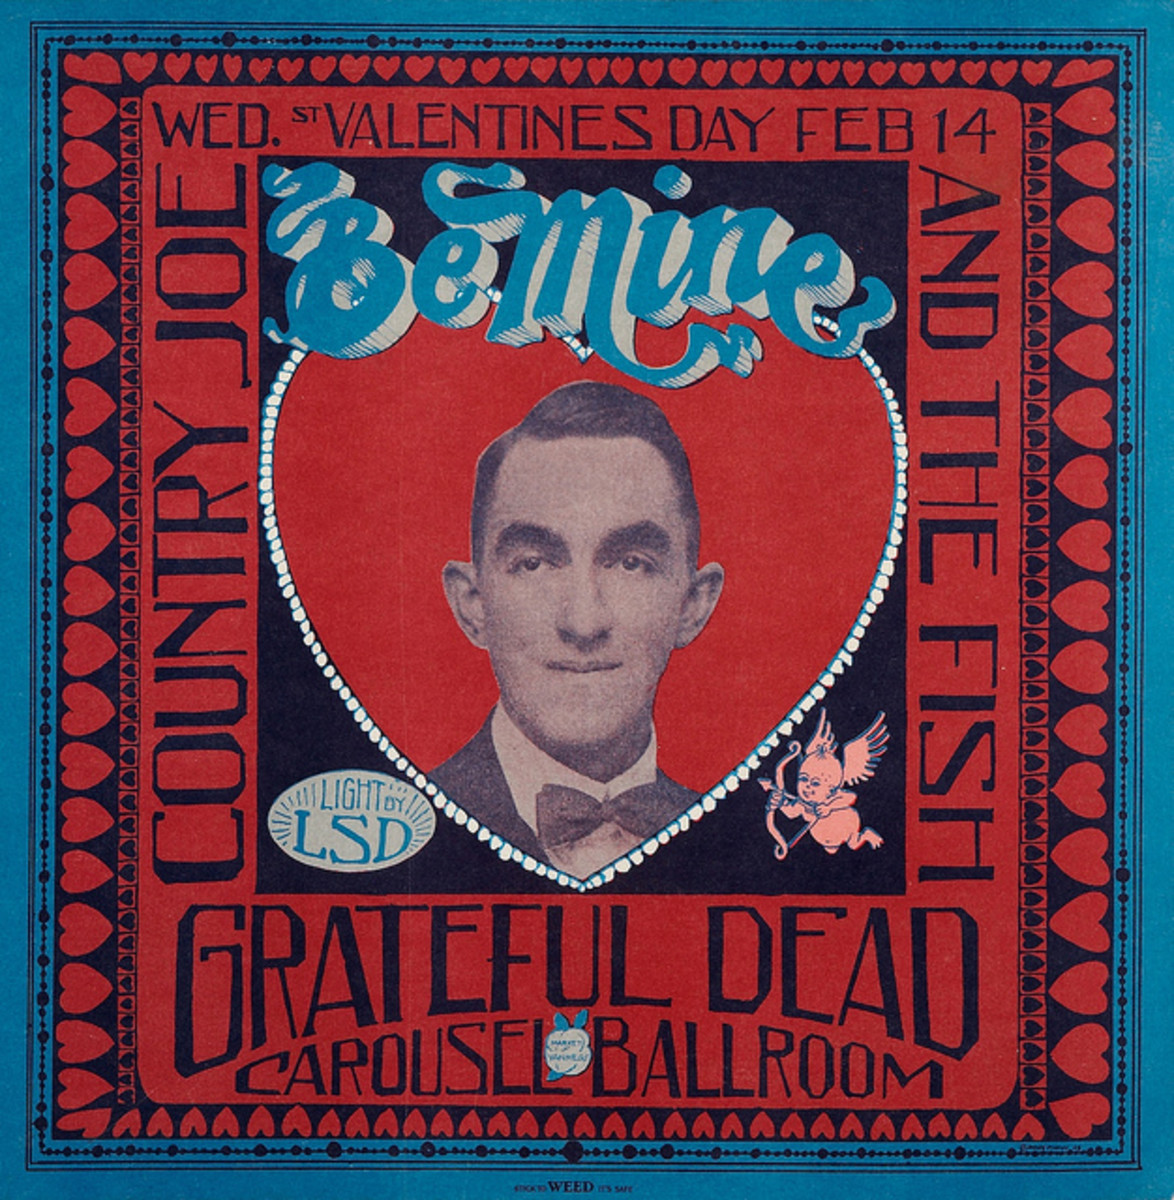 The Grateful Dead, Country Joe & the Fish, Carousel Ballroom Valentines Day (1968) Poster Graphics by Stanley Mouse